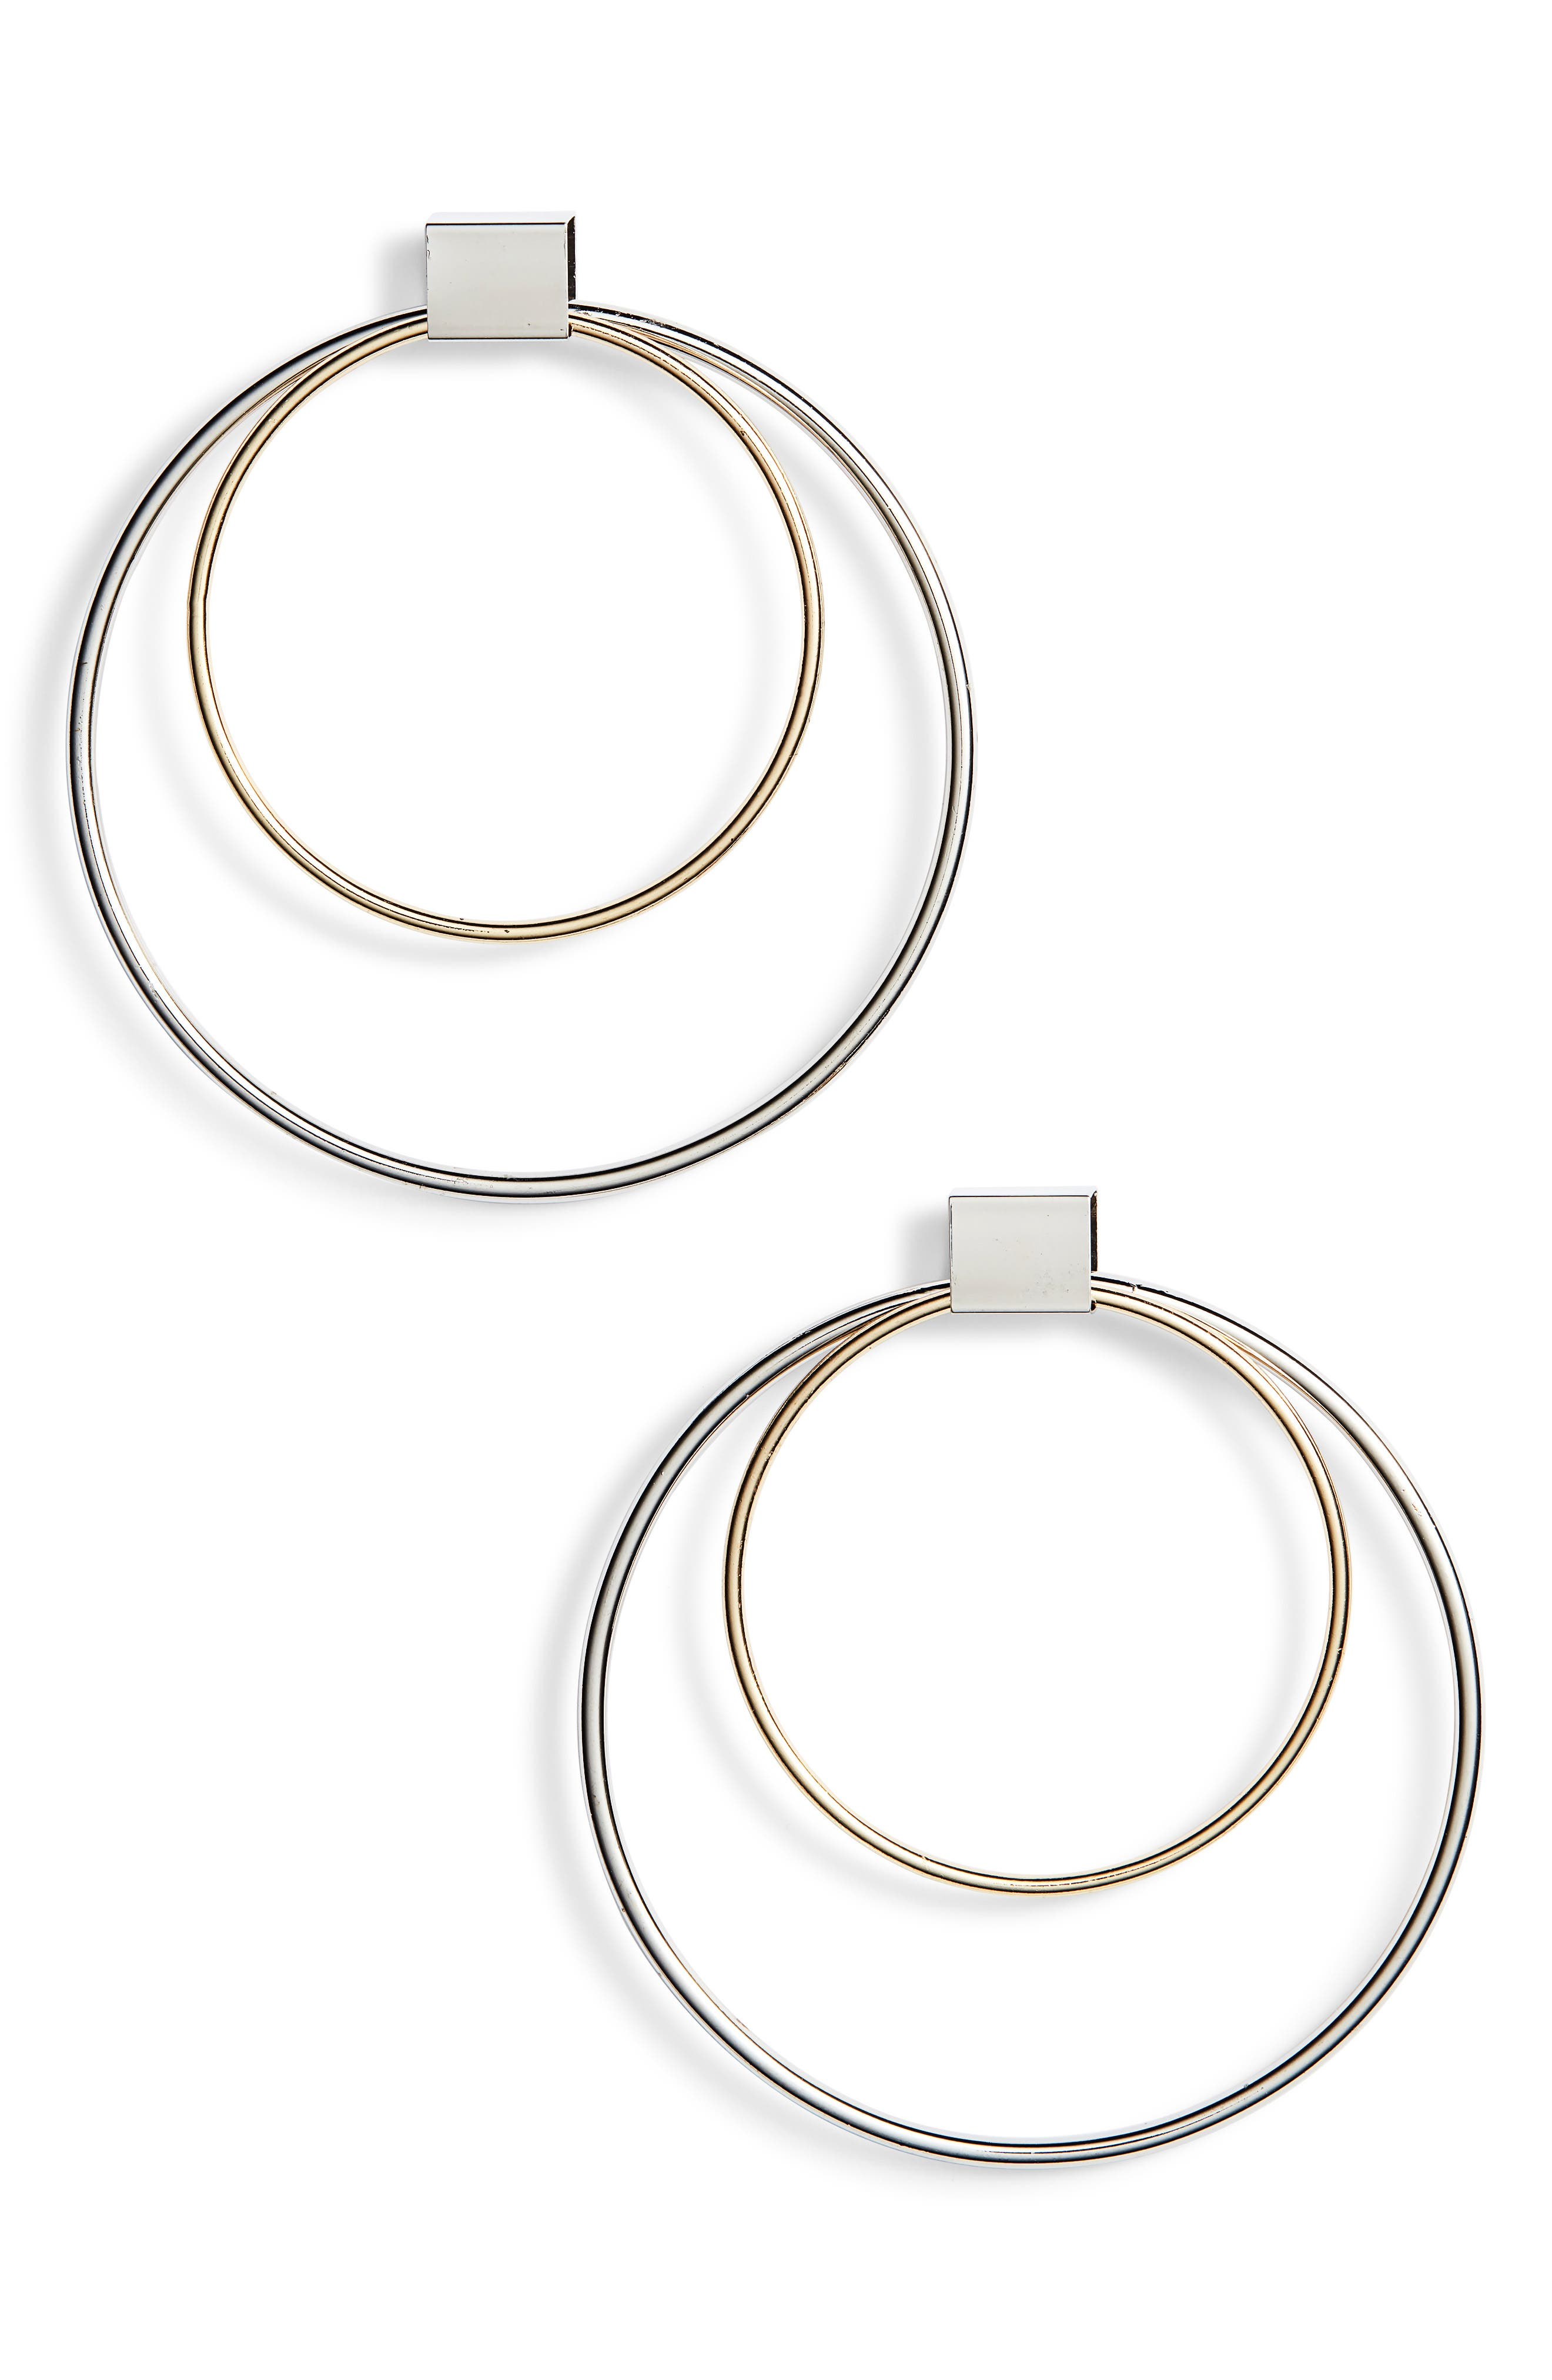 Double Hoop Earrings,                         Main,                         color, Gold/ Silver